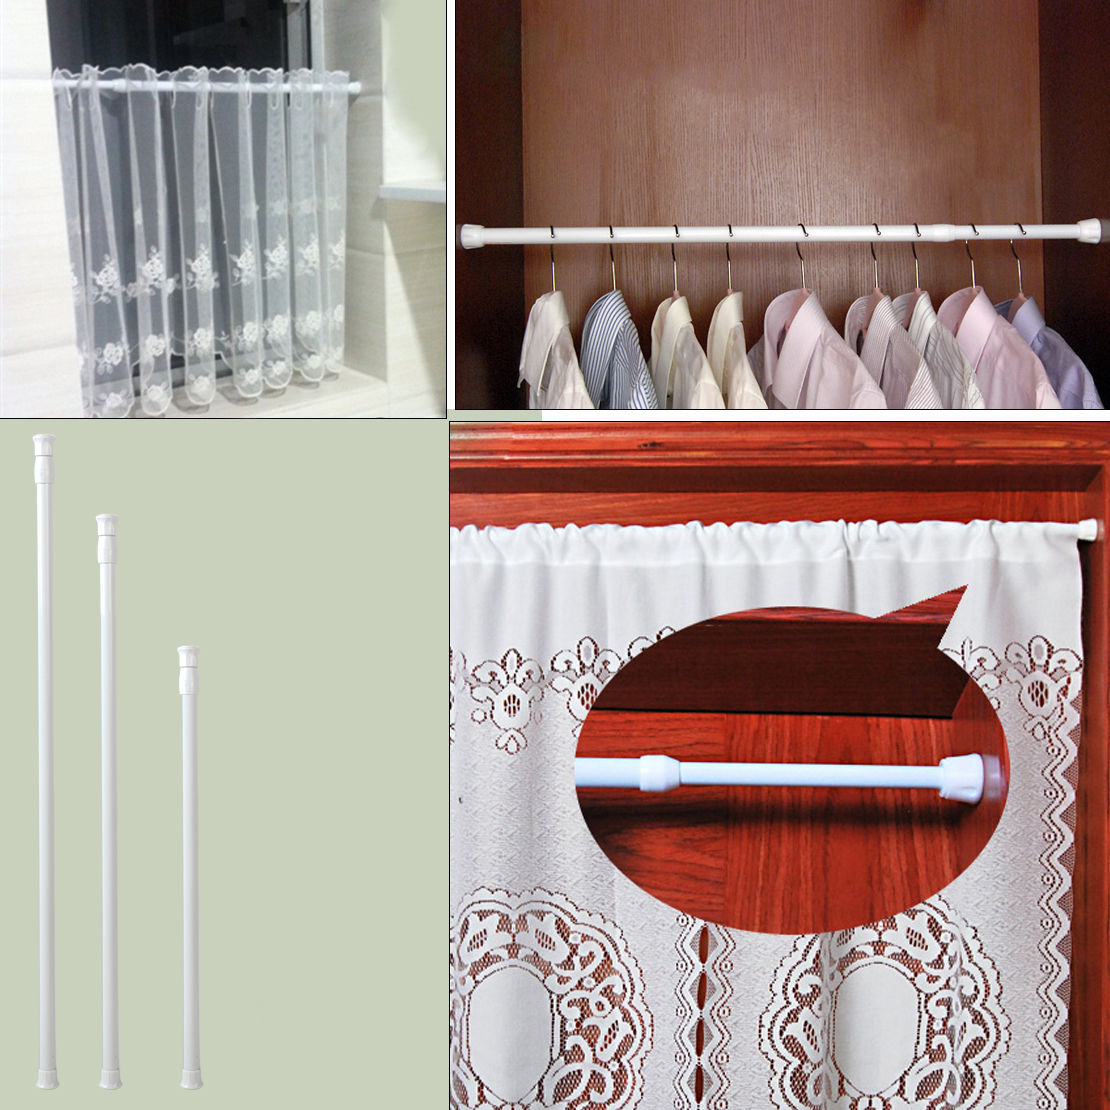 High Carbon Steel Adjustable Rod Tension Bathroom Curtain Extensible Rod Hanger ...